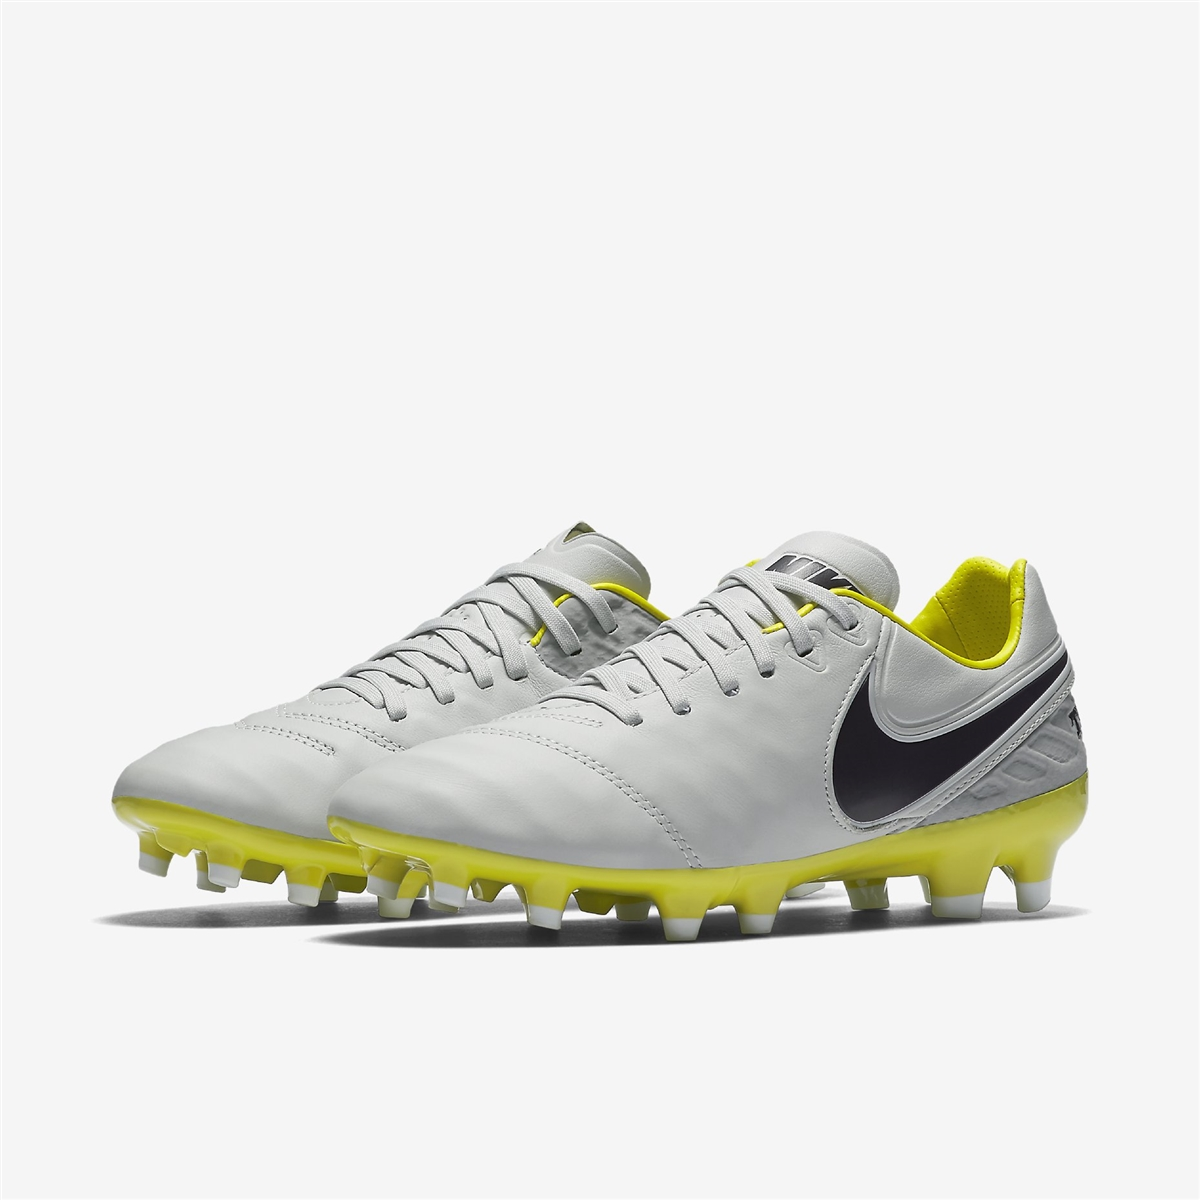 Nike Women's Tiempo Legacy II FG Soccer Cleats (Pure Platinum/Purple Dynasty /Electrolime)